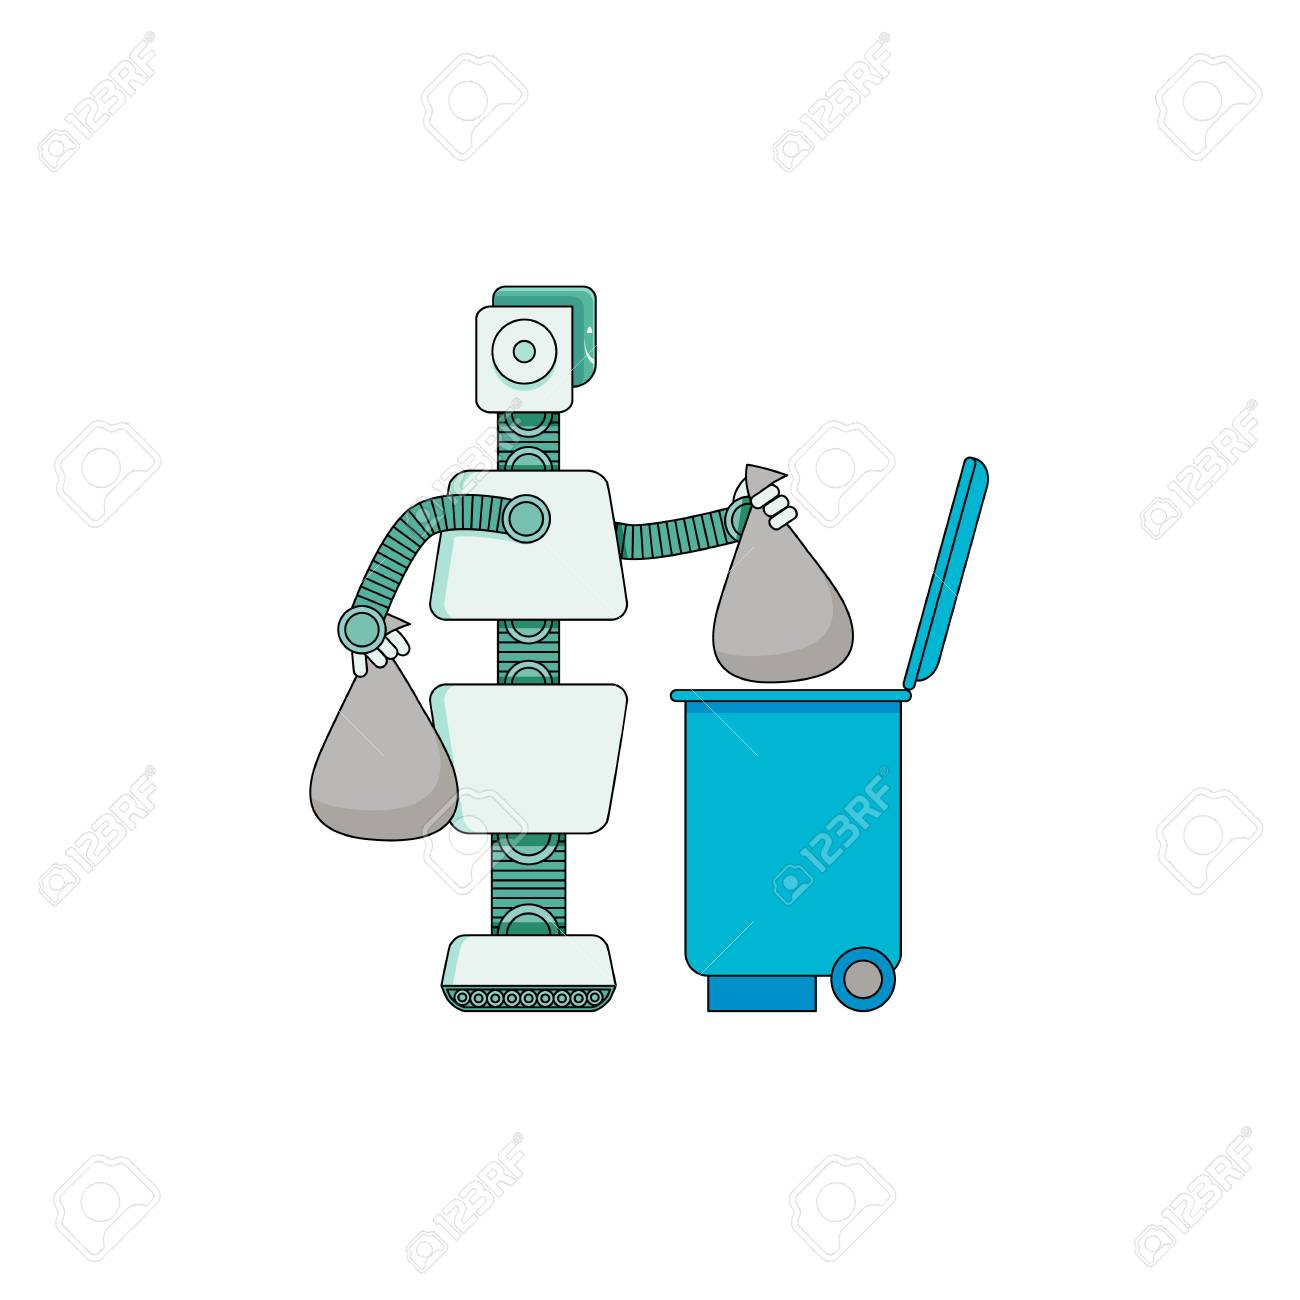 Robot doing housework - android taking out trash in tank isolated